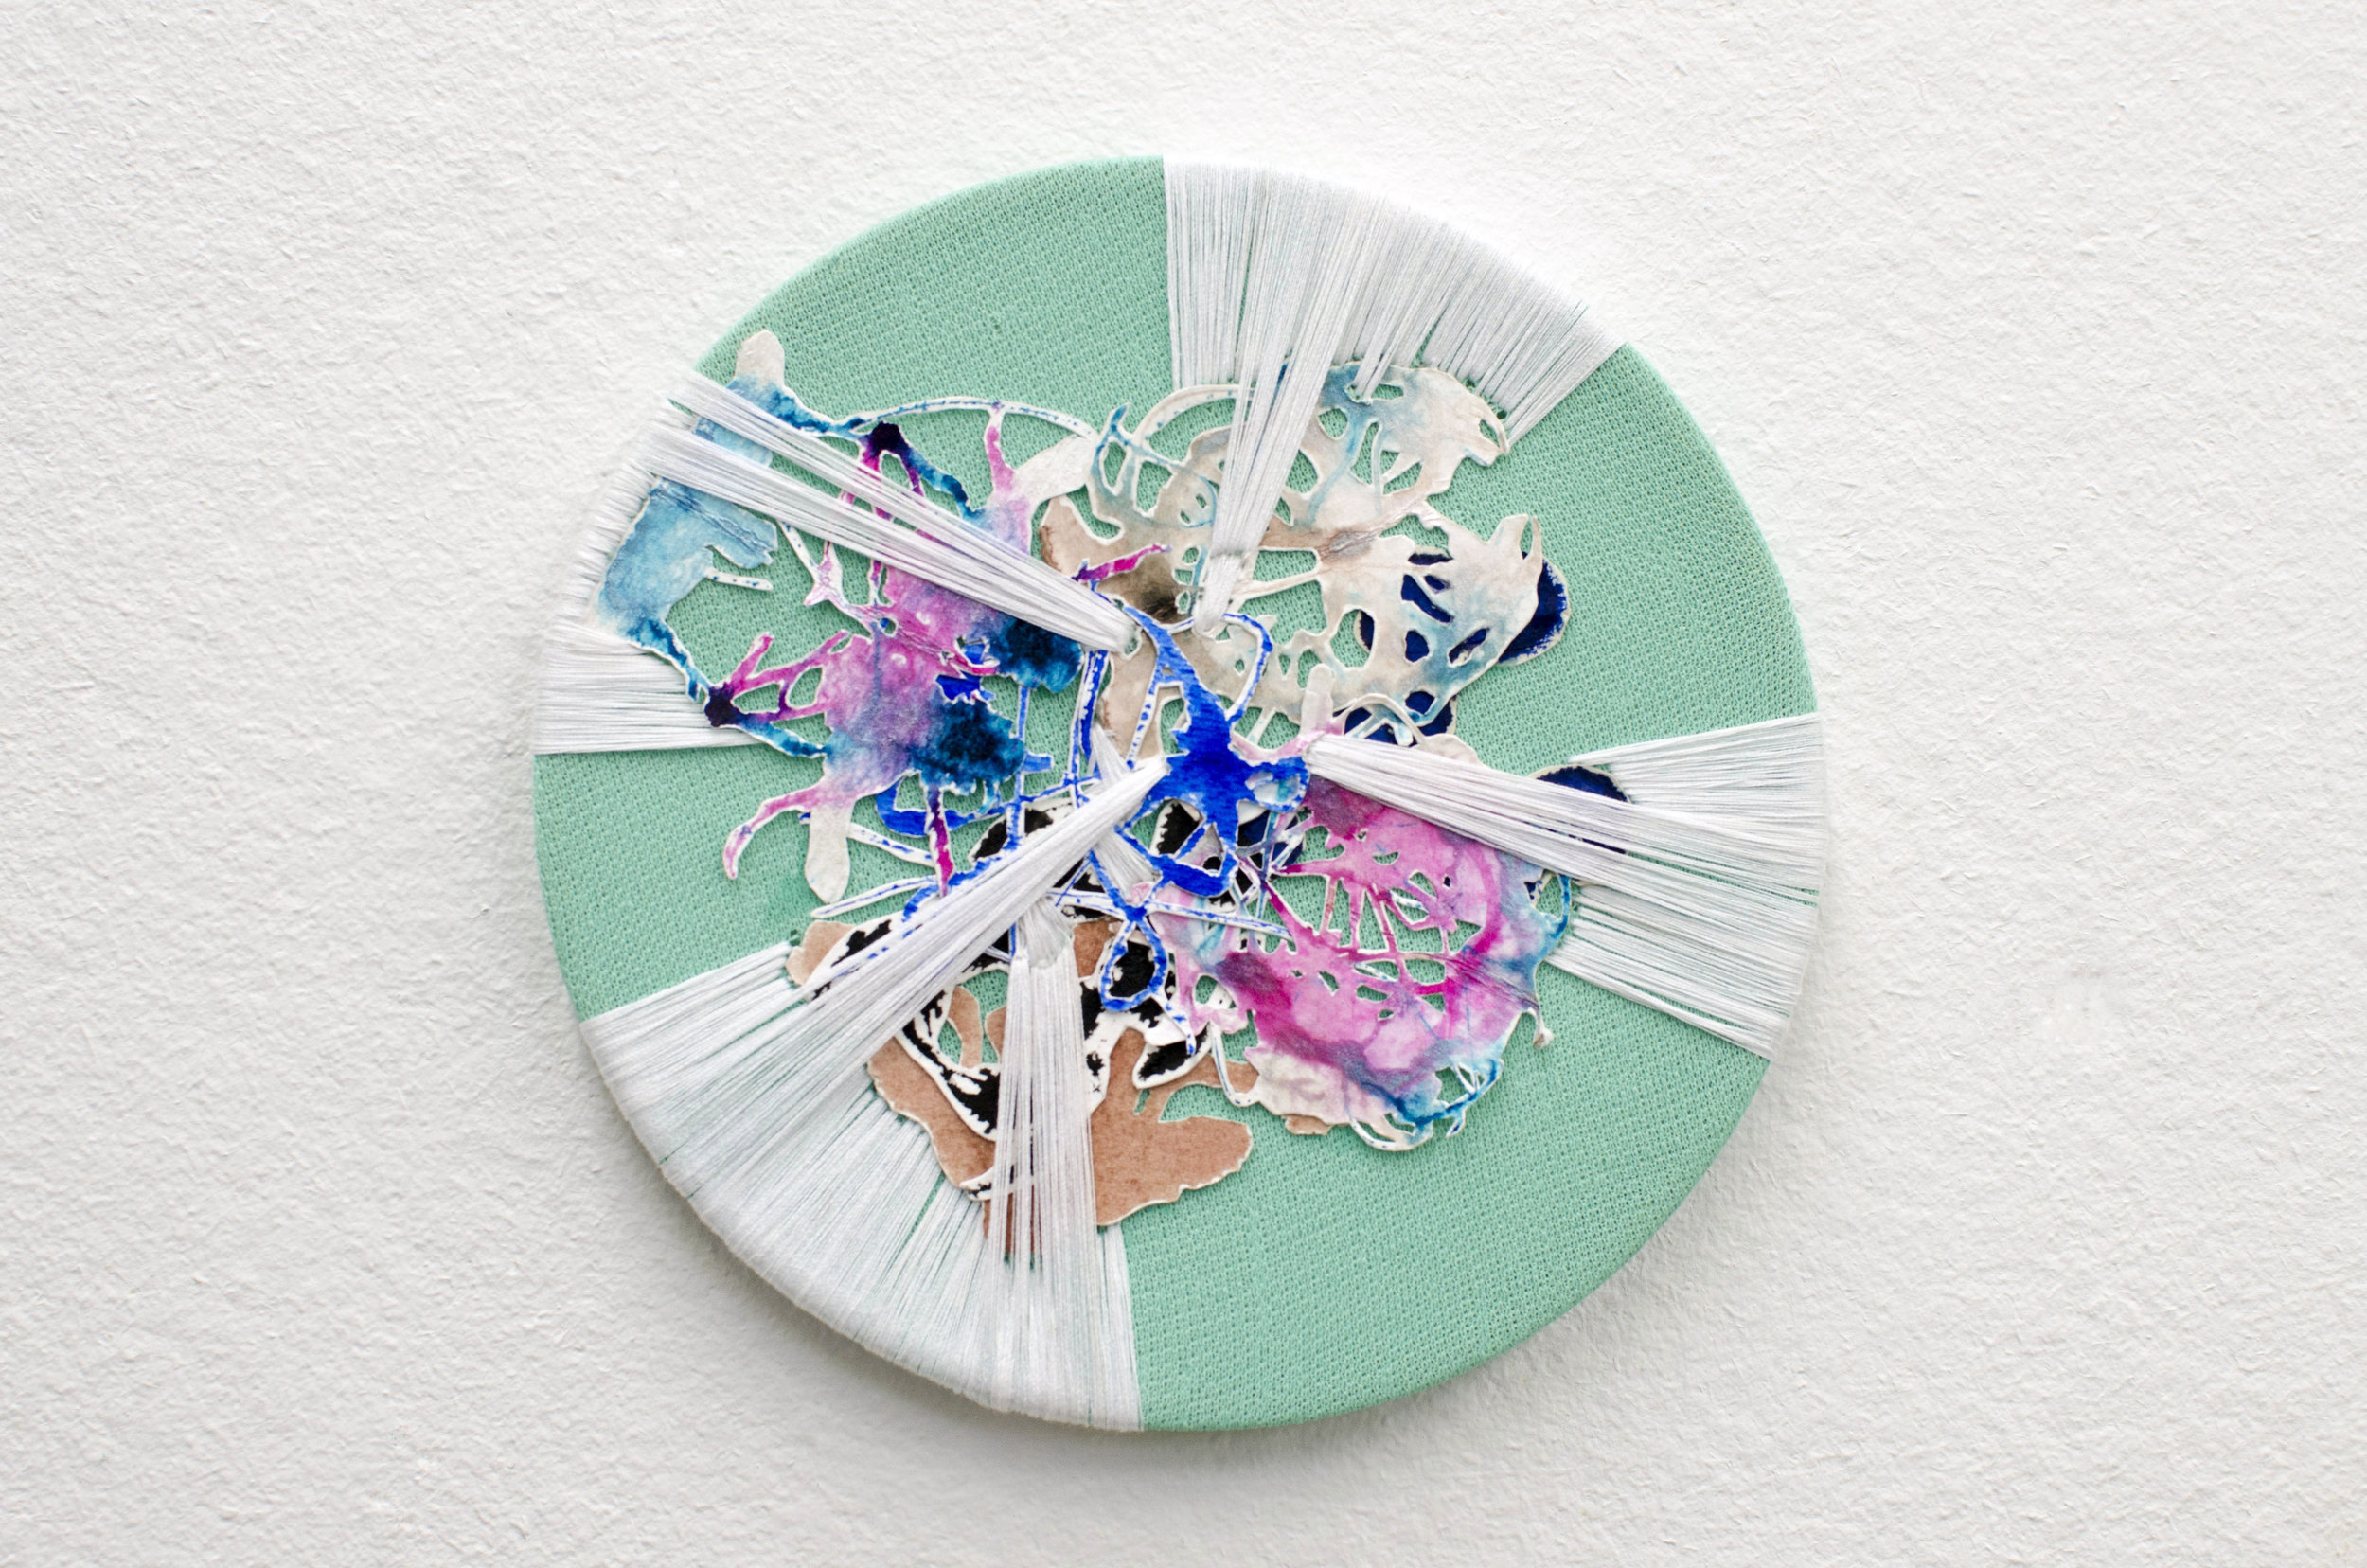 Emma Balder,  Spinning  (2014), Acrylic, paper, and thread on fabric, 7 x 7 inches